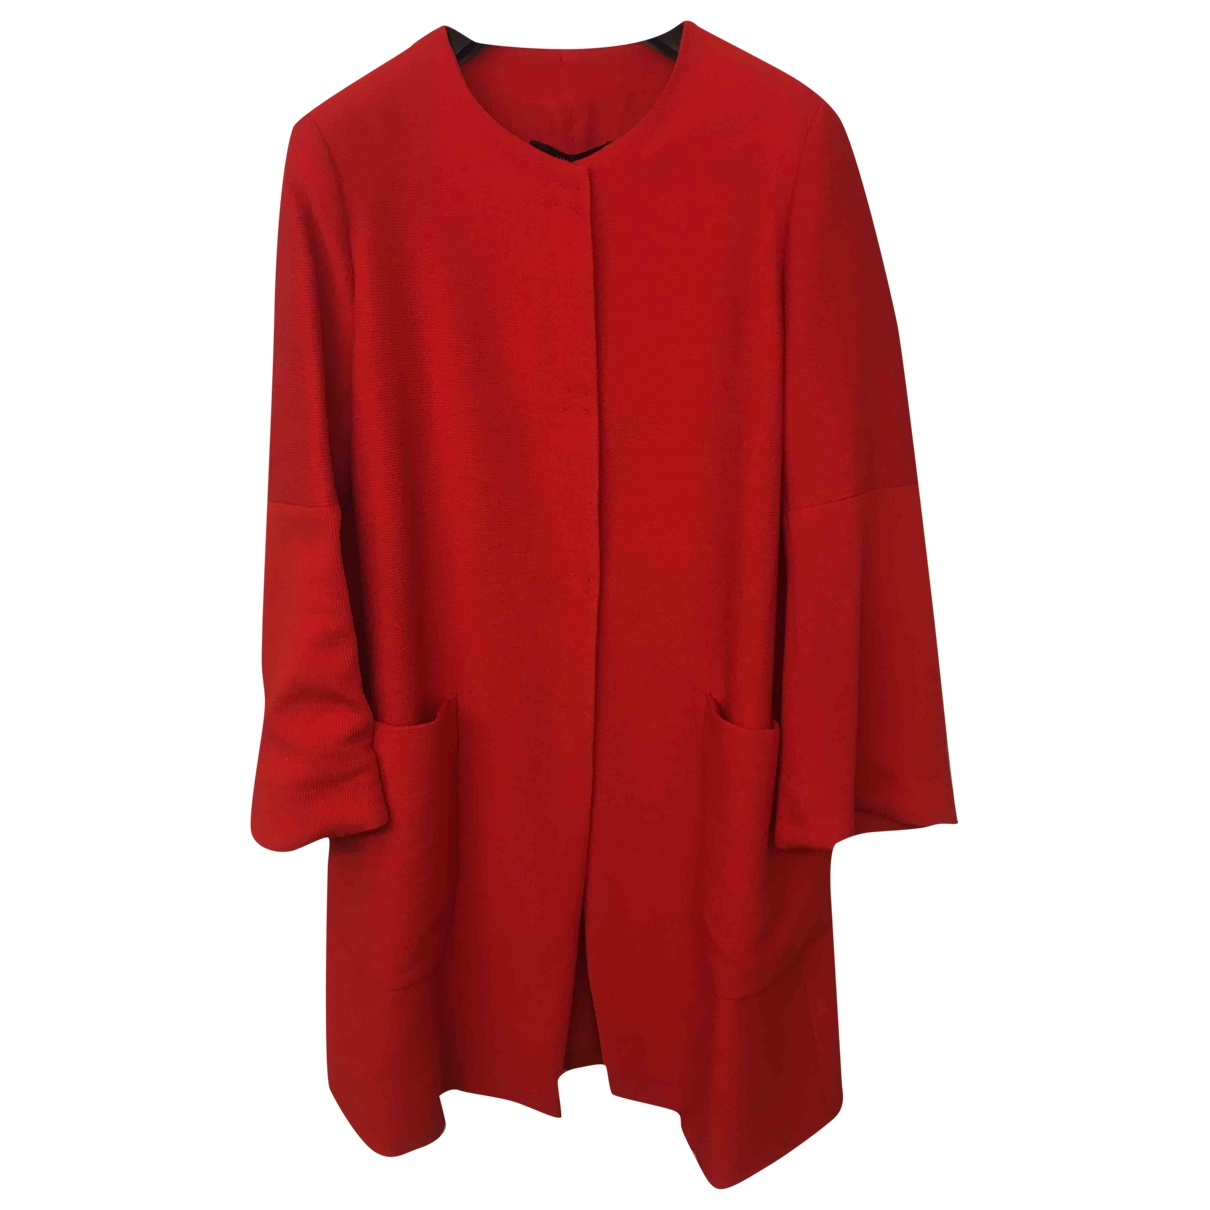 Zara \N Red jacket for Women M International